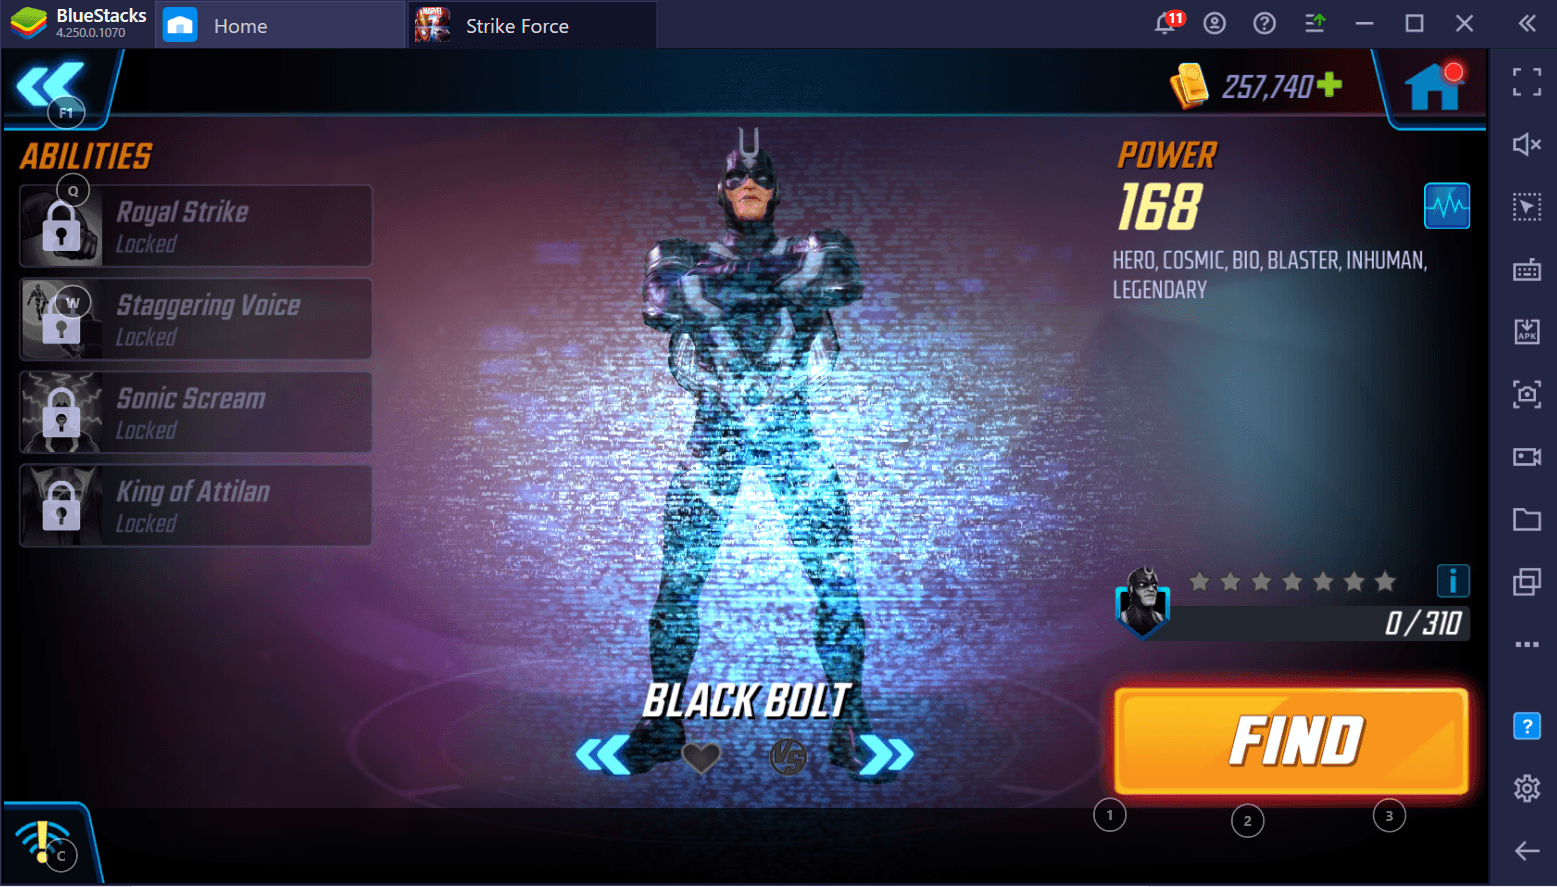 MARVEL Strike Force on PC: BlueStacks List of Top 5 Characters in 2021